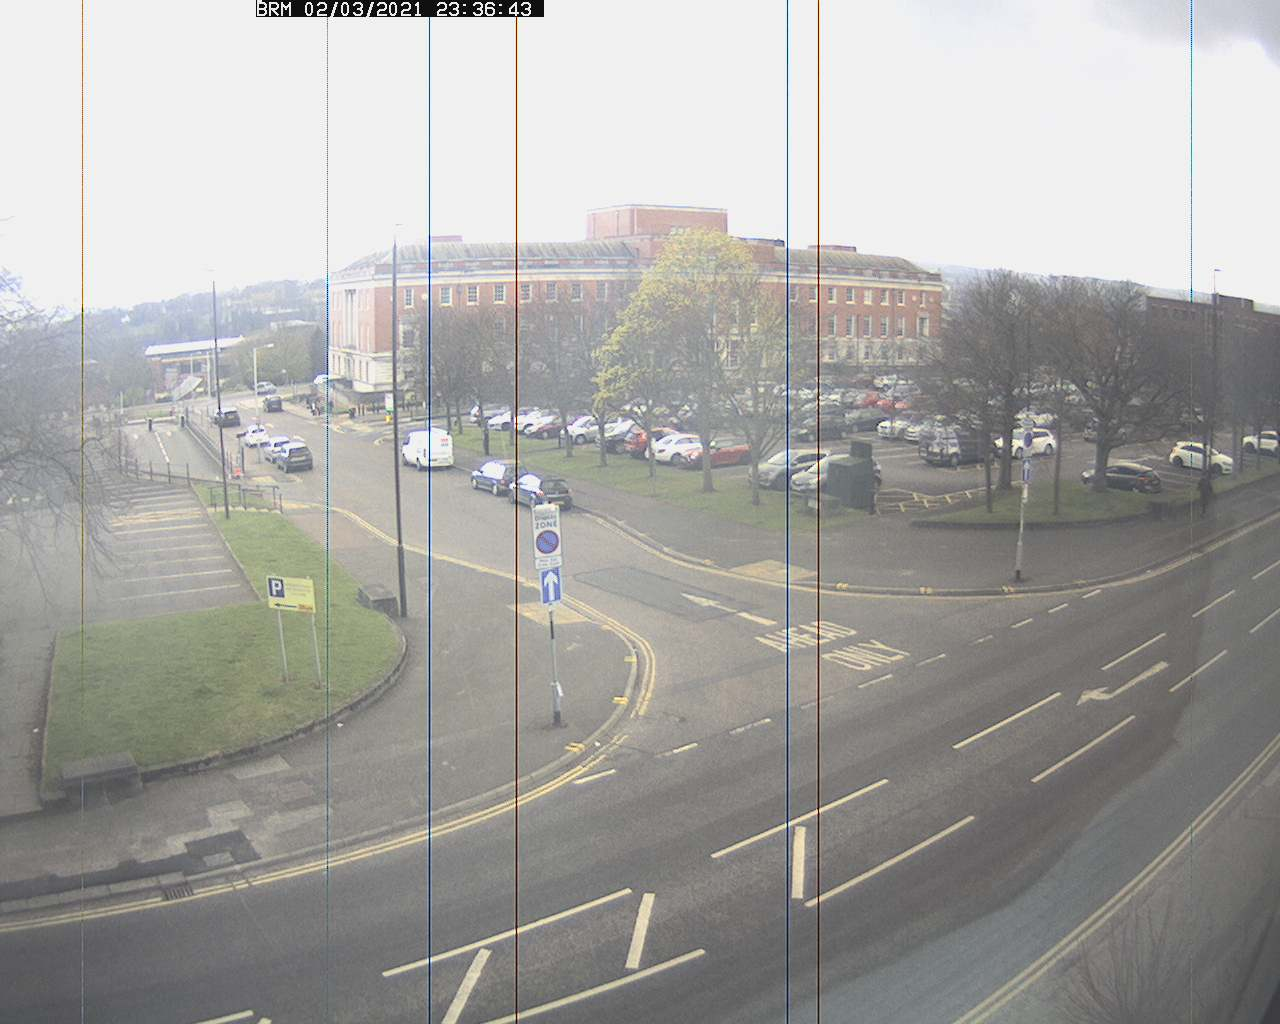 Chesterfield Webcam